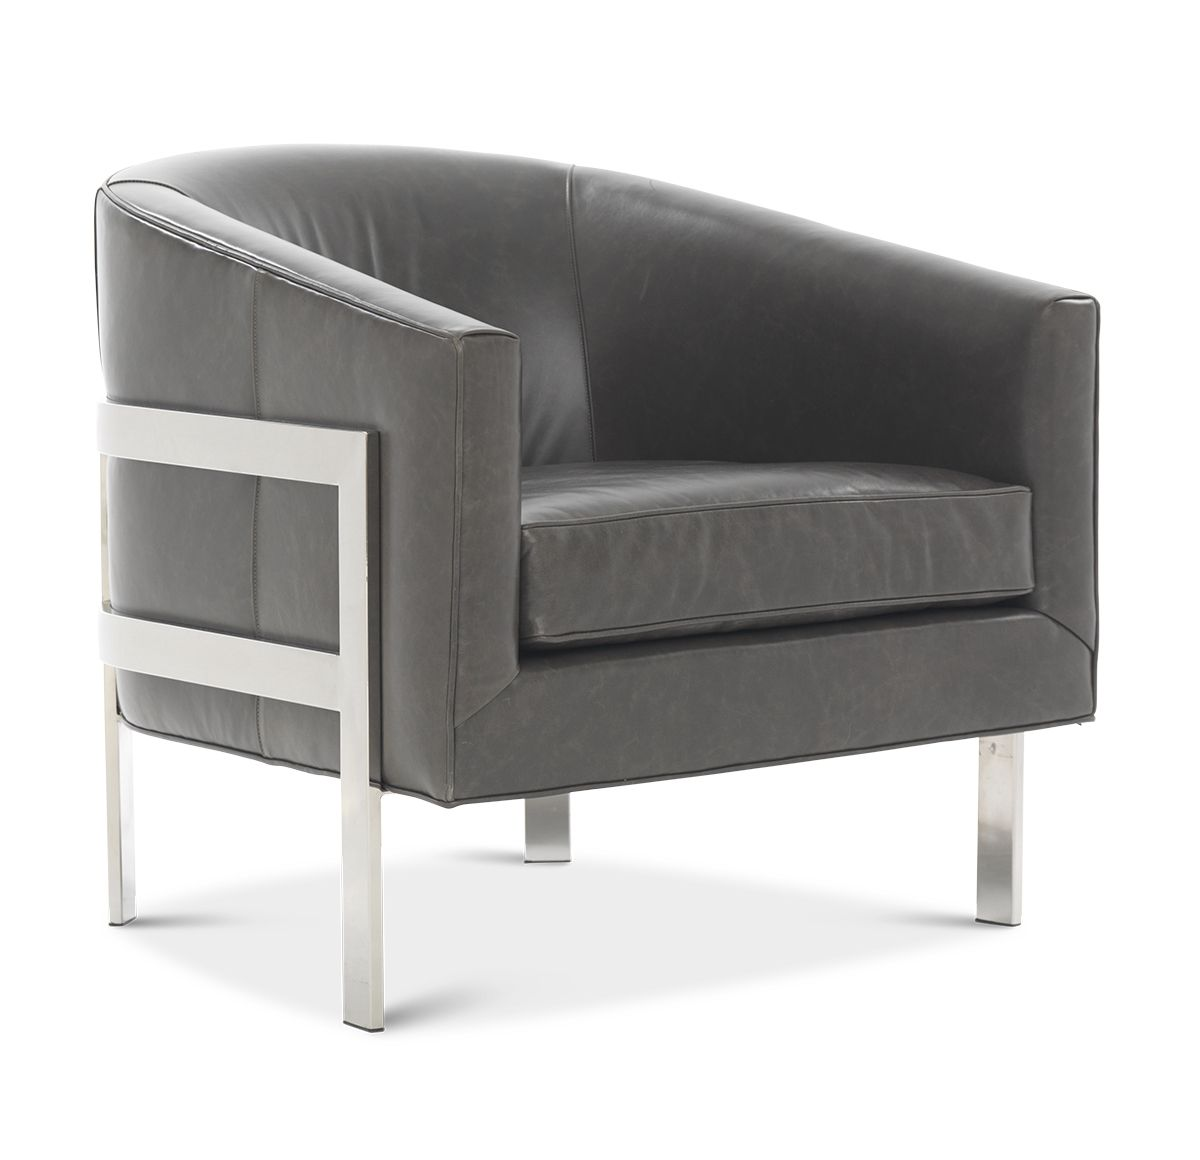 Leather Chair, Leather Sofa Chair